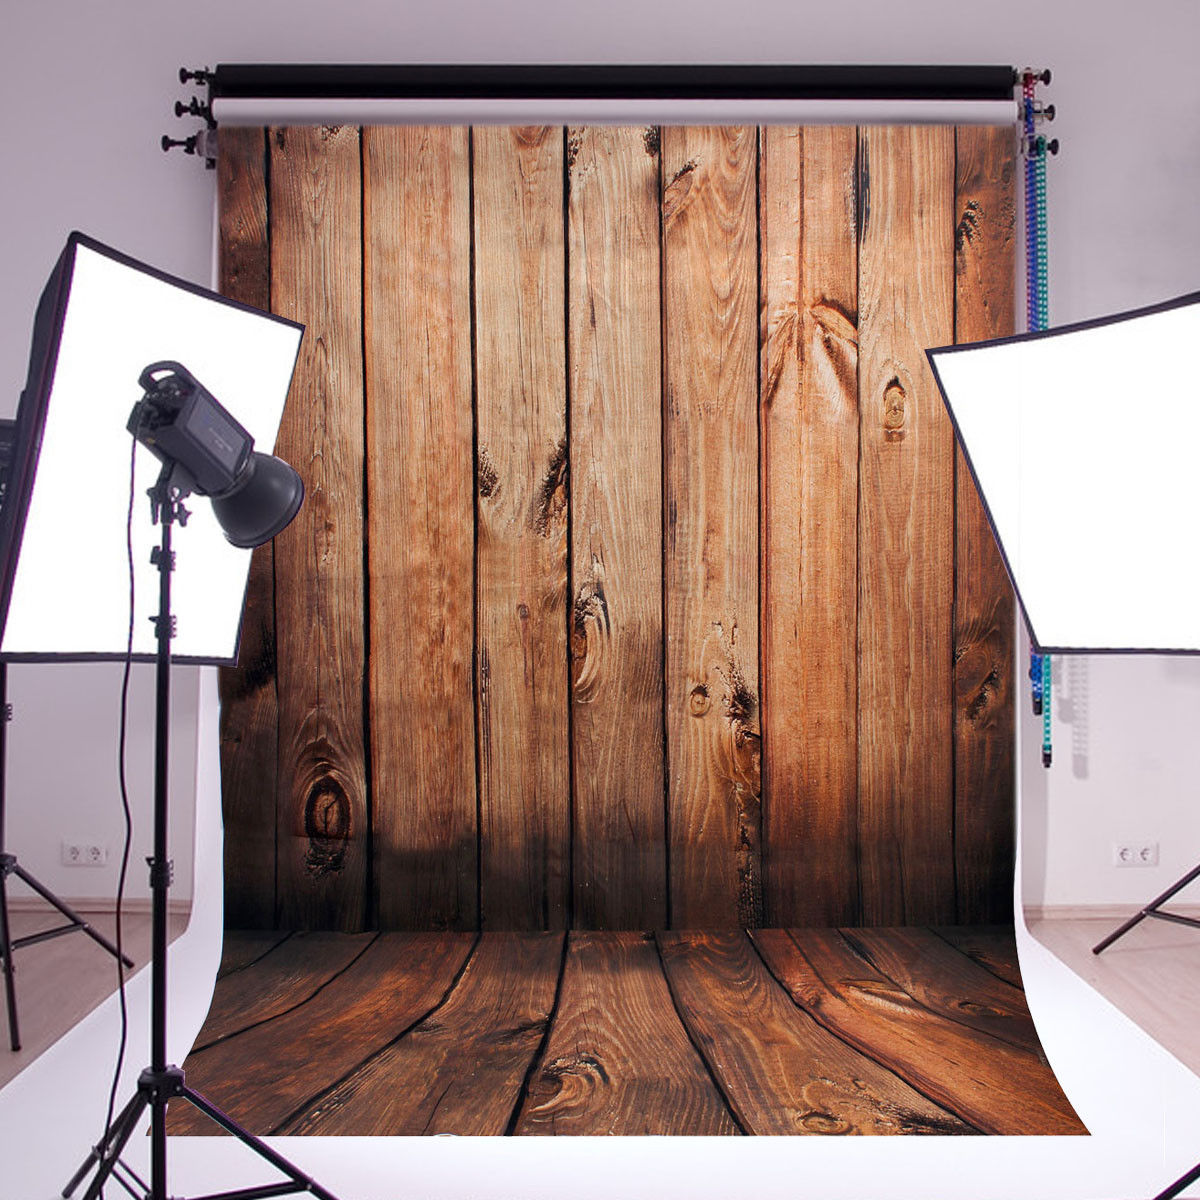 Photography Backdrops vinyl background for photo studio vintage wood baby background 2.1*1.5m Hot Sale 10x10ft valentine s day theme photography backdrops vinyl prop photo studio background qrl331